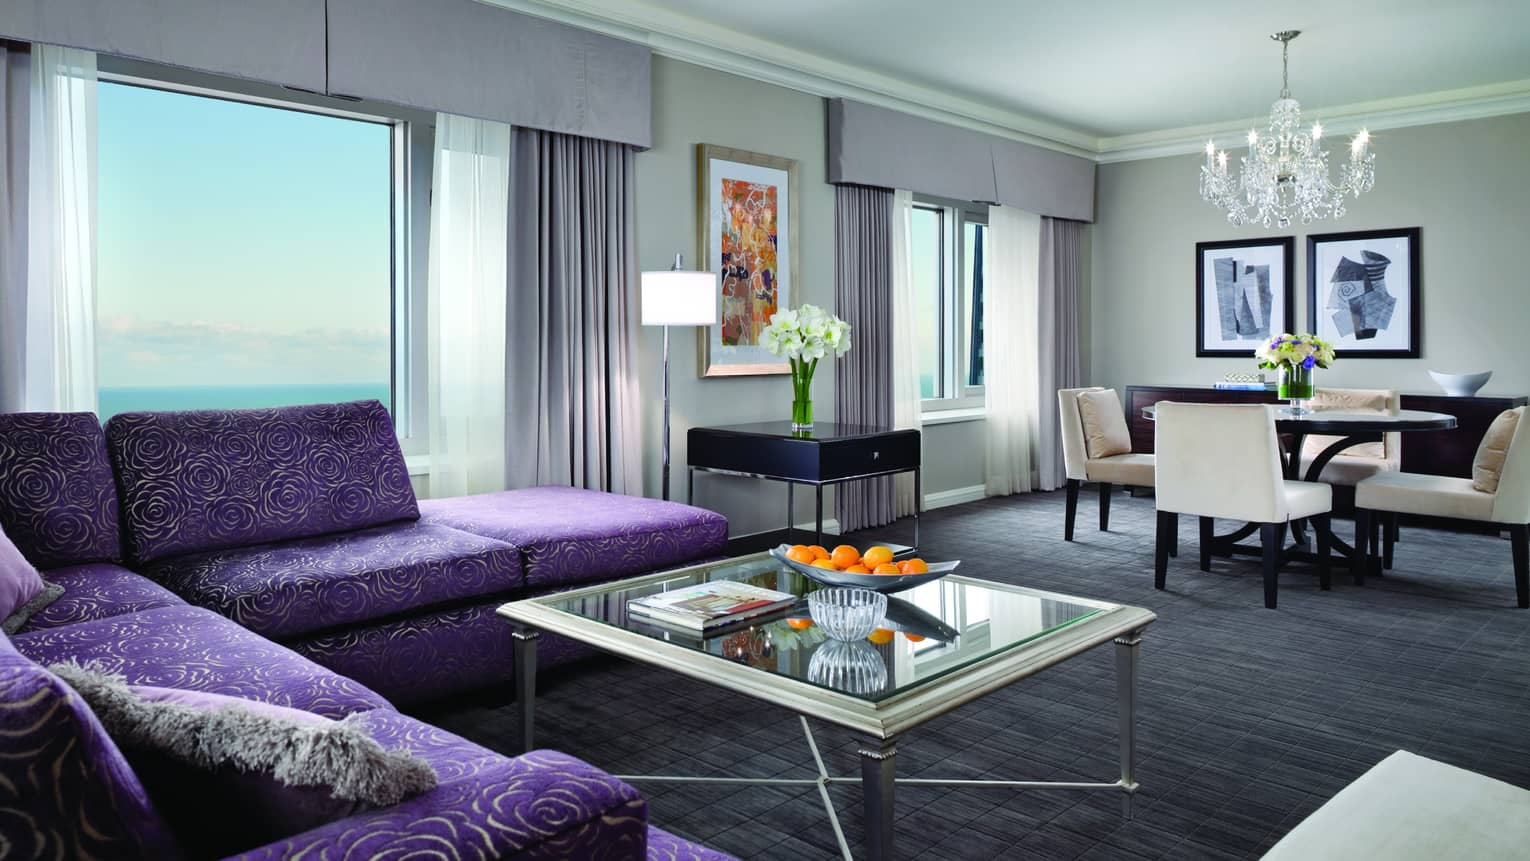 Chicago Luxury Hotel Downtown 5 Star Hotel Four Seasons Chicago